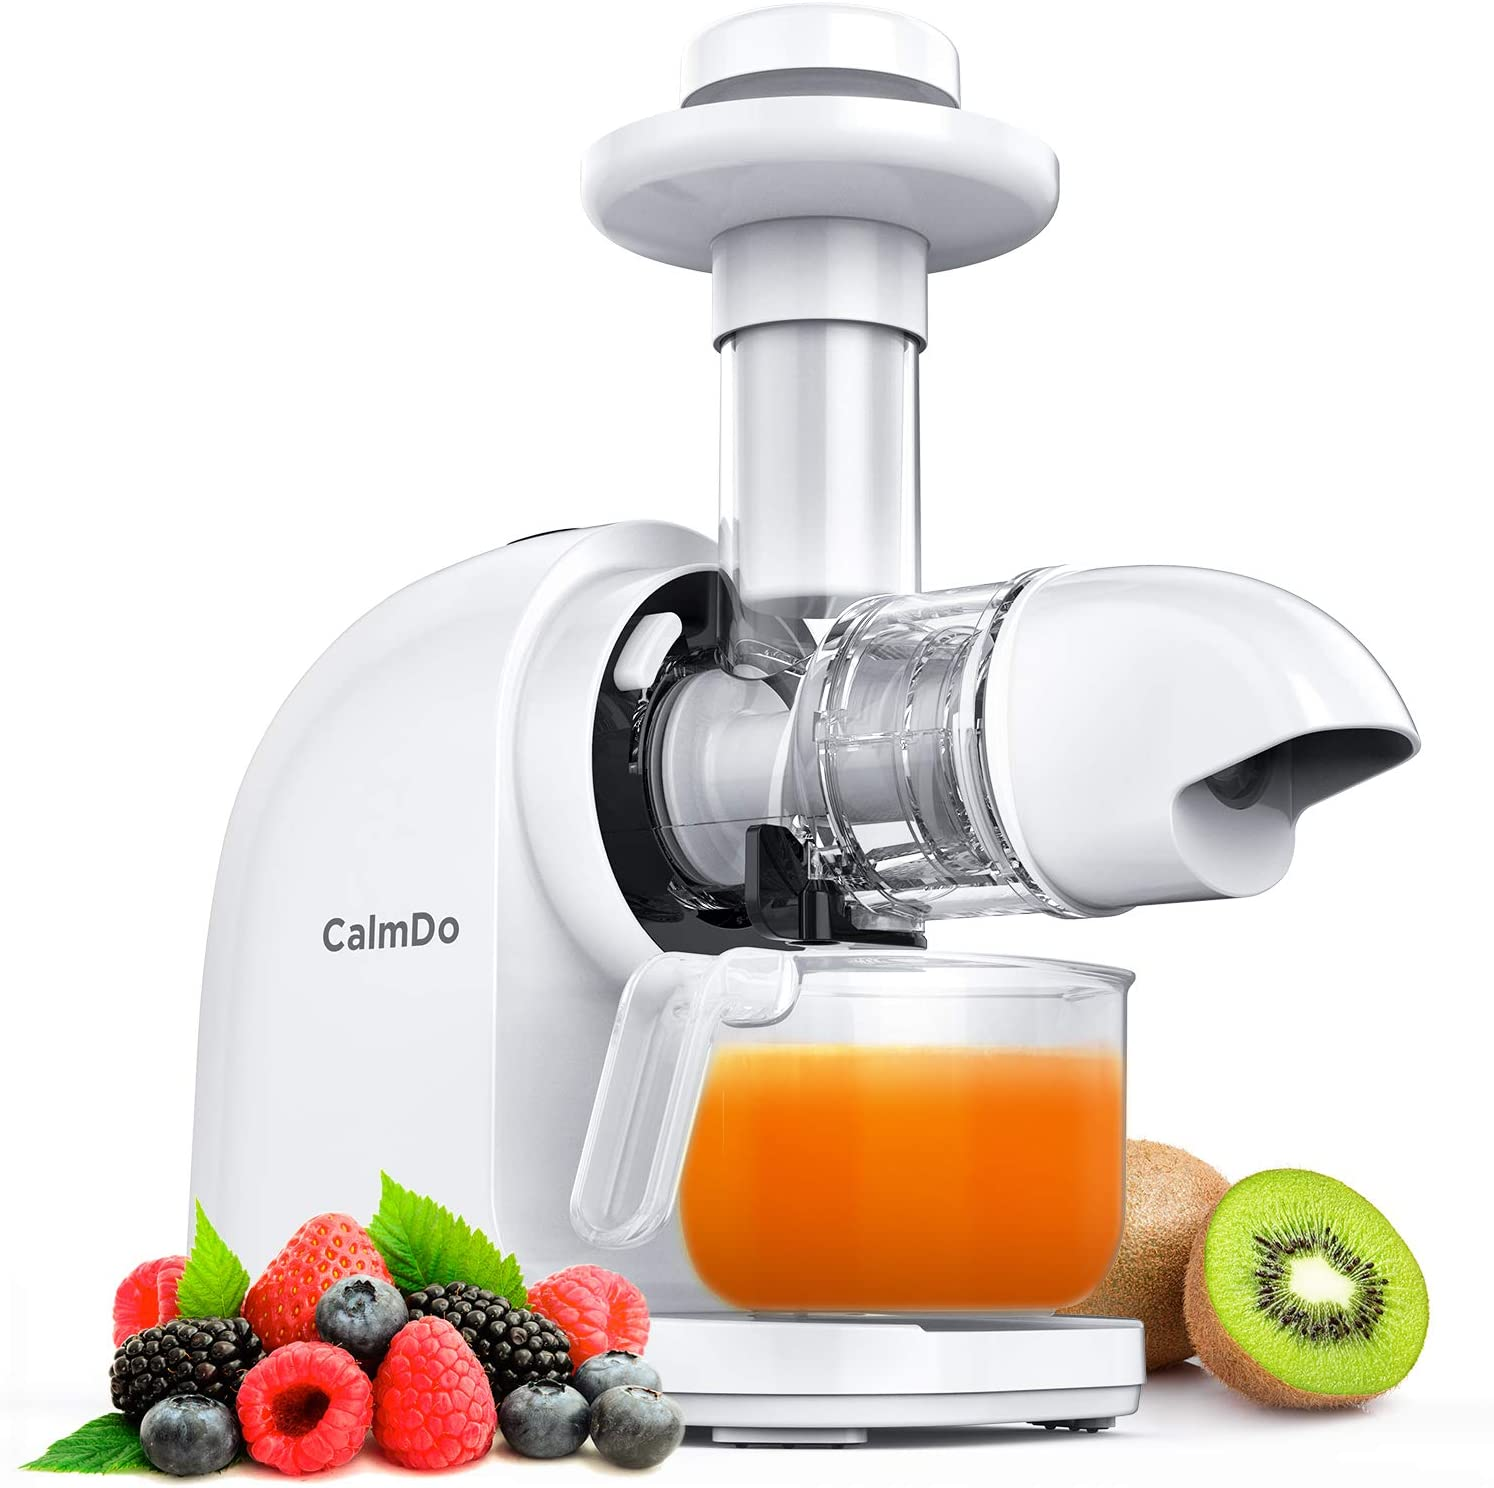 Masticating Juicer, CalmDo Slow Juicer Extractor, Cold Press Juicer with Reverse Function, Quiet Motor, Slow Masticating Juicer for Higher Nutrient and Vitamins, BPA Free